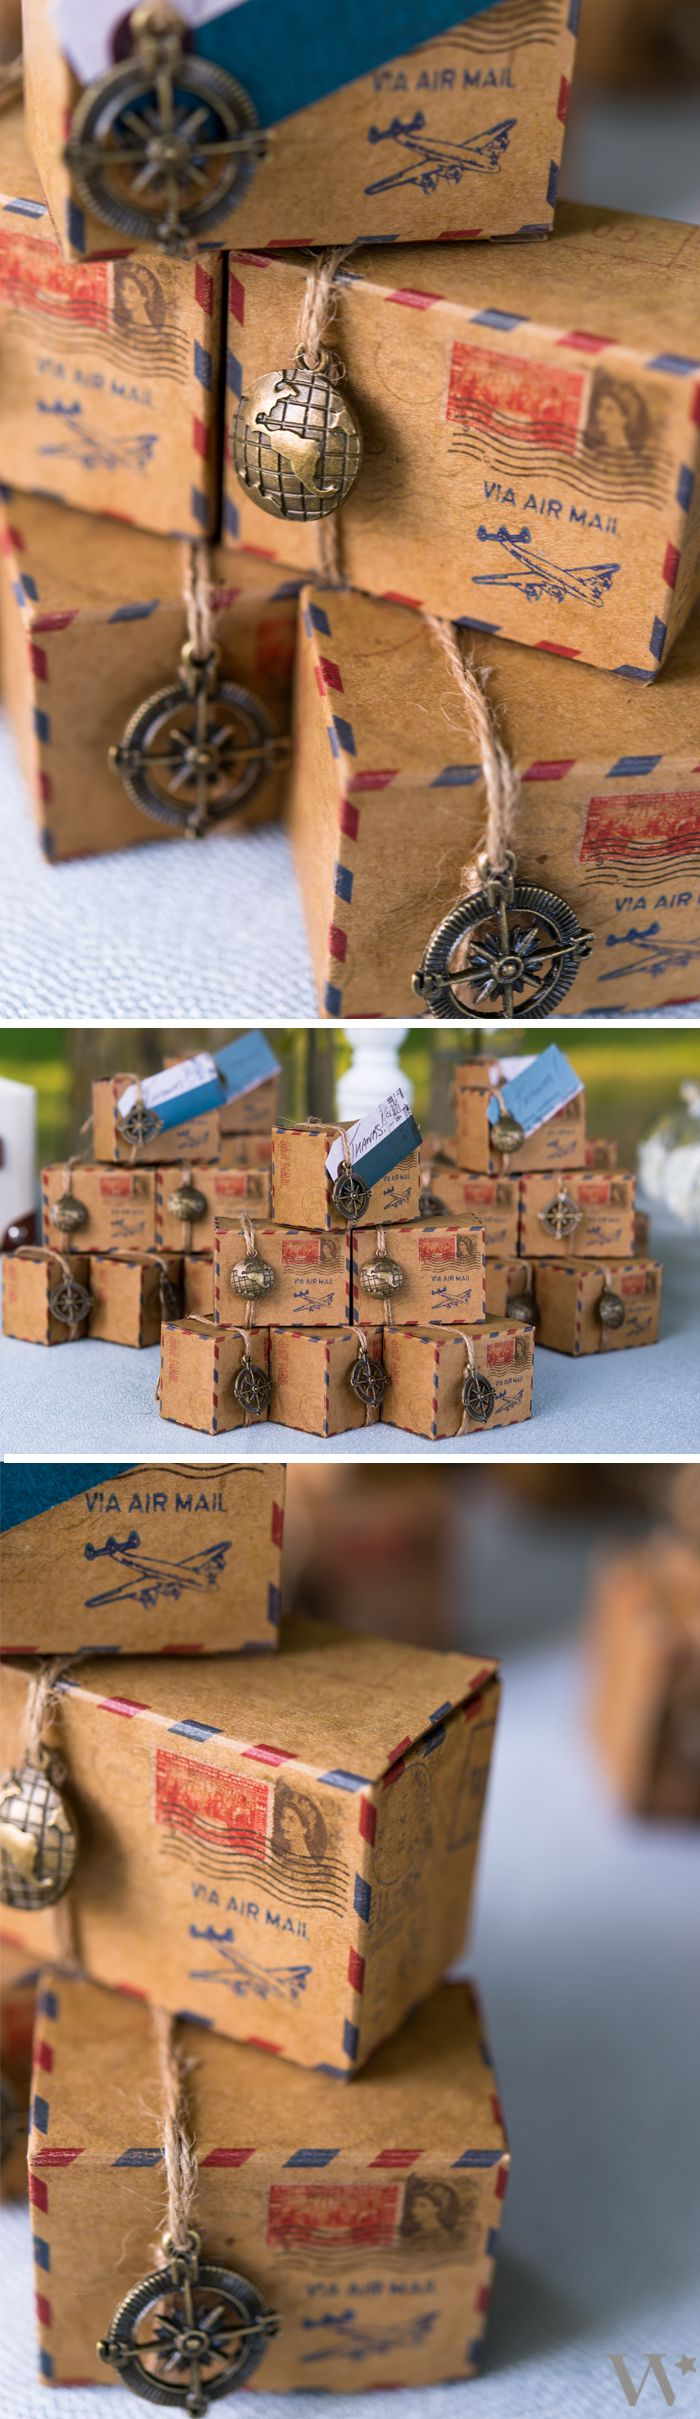 Having a travel themed or vintage wedding? Show off your DIY wedding flair with our simple to assemble Vintage Inspired Airmail Favor Box Kits that you can fill with your favorite treats or trinkets!